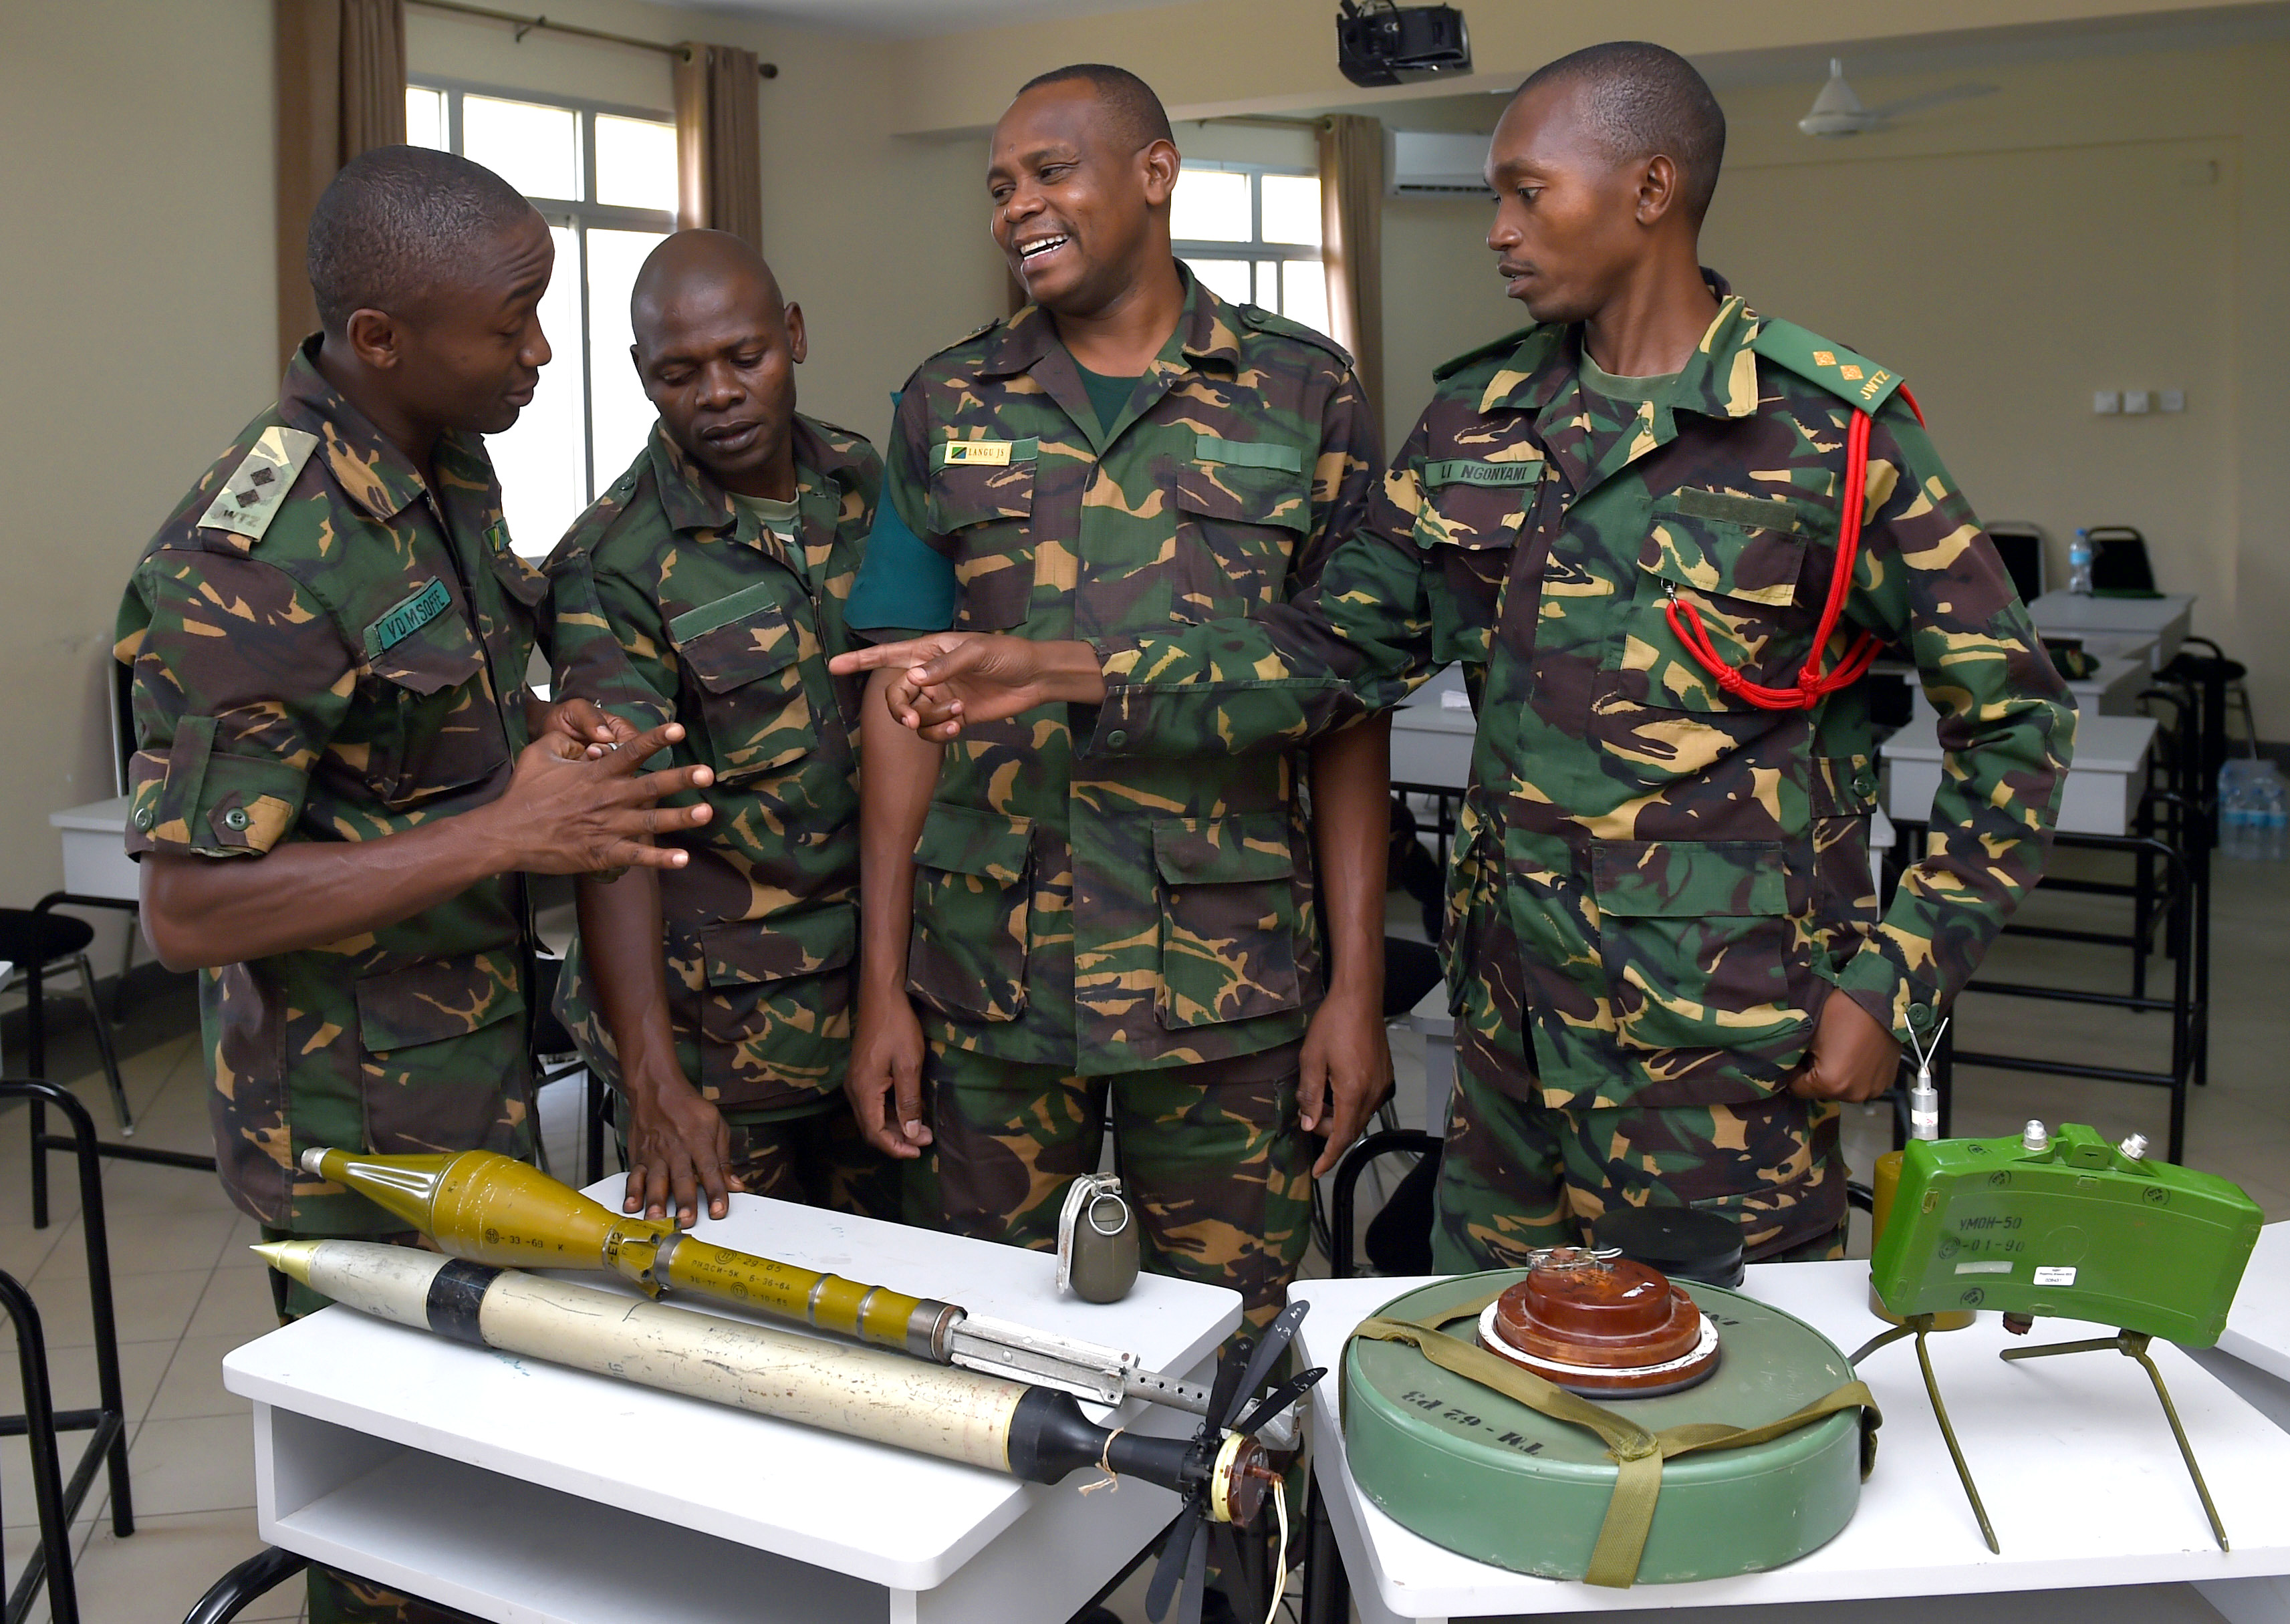 Tanzania People's Defense Force personnel look over various ordnance items during the Humanitarian Mine Action Instruction course at the Peace Keeping Training Center in Dar es Salaam, Tanzania Aug. 24, 2015. U.S. Navy Explosive Ordnance Disposal technicians, assigned to Combined Joint Task Force-Horn of Africa, instructed 22 students in order to increase partner nation's ordnance knowledge. (U.S. Air Force photo by Senior Airman Nesha Humes)